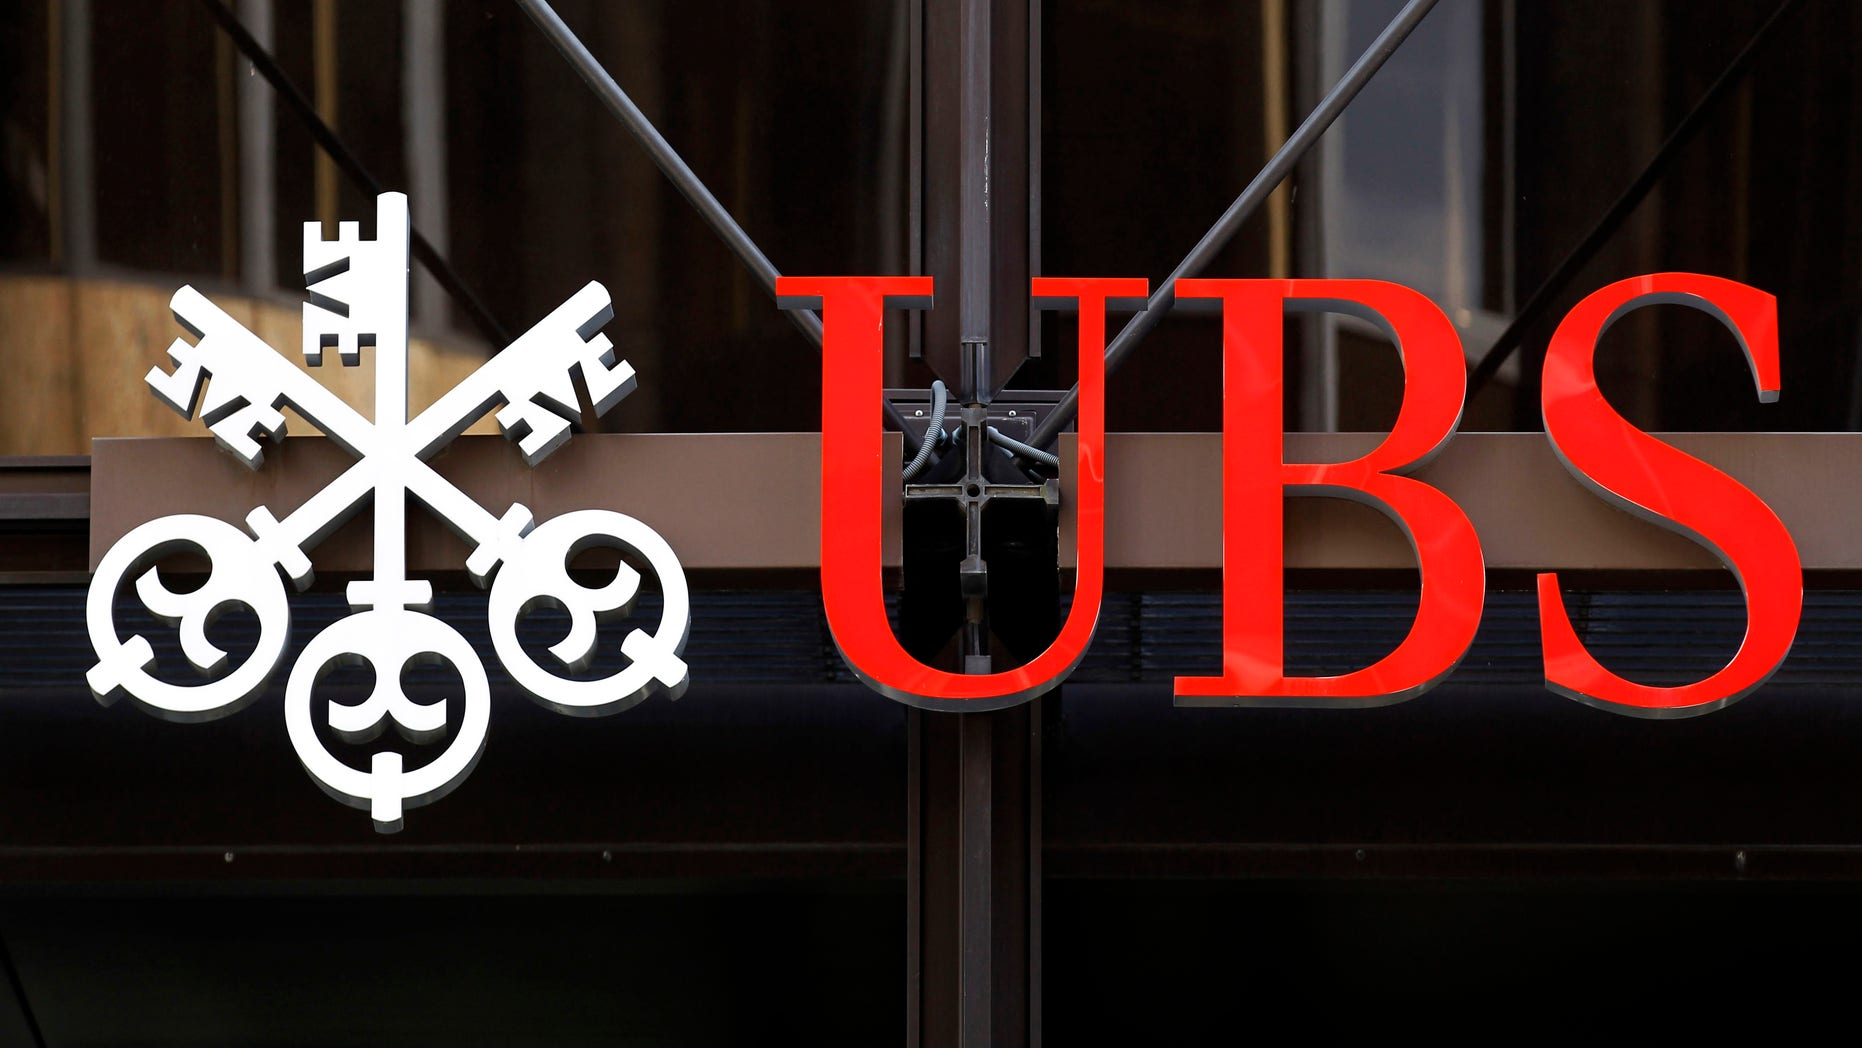 A logo for Swiss bank UBS is seen outside one of their offices in the City of London, Thursday, Sept. 15, 2011. Swiss banking giant UBS said Thursday that a rogue trader has caused it an estimated loss of $2 billion, stunning a beleaguered banking industry that has proven vulnerable to unauthorized trades.